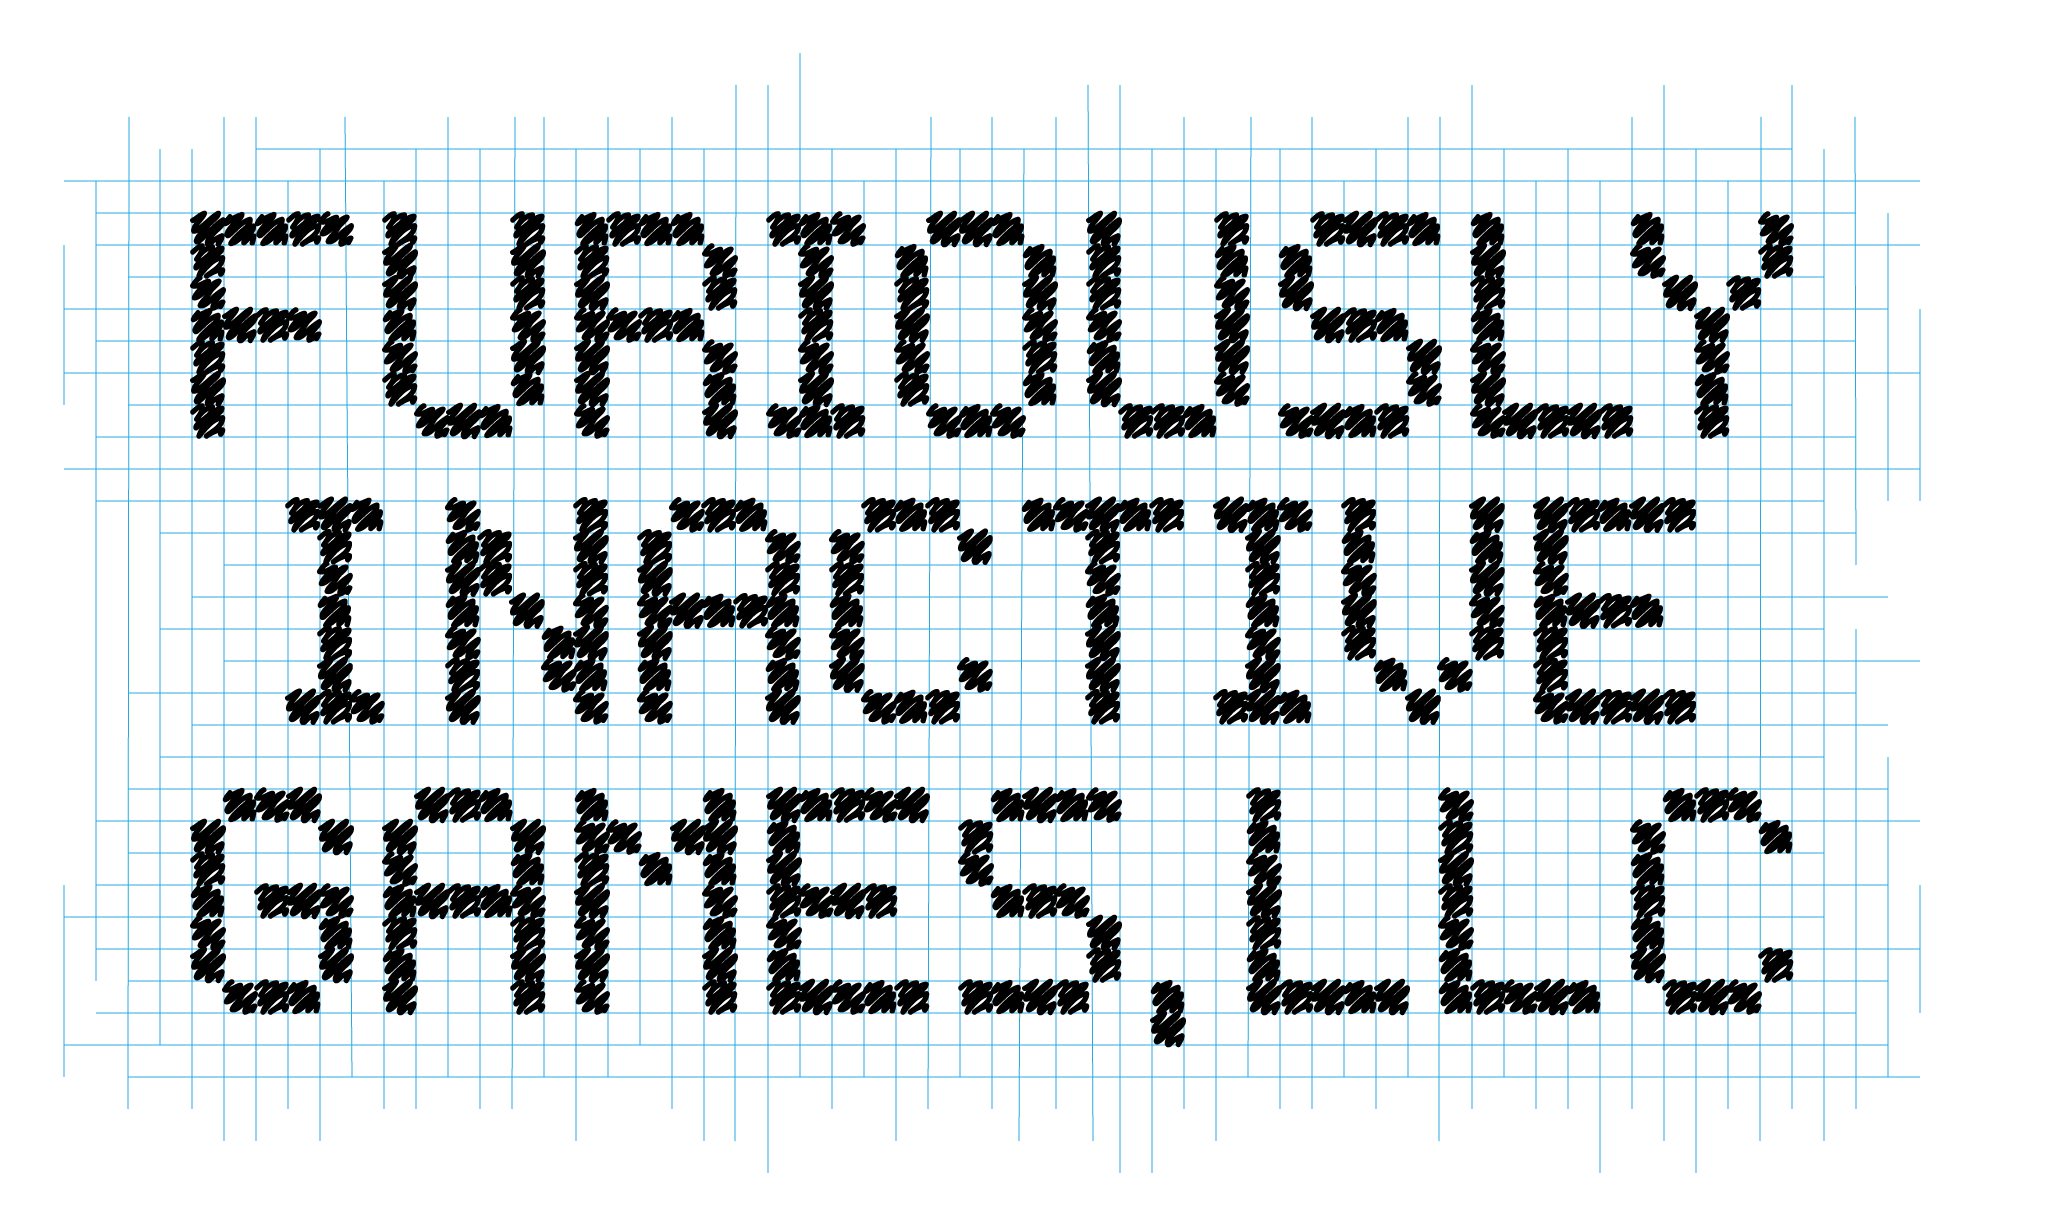 furiously_inactive_games_2048.png